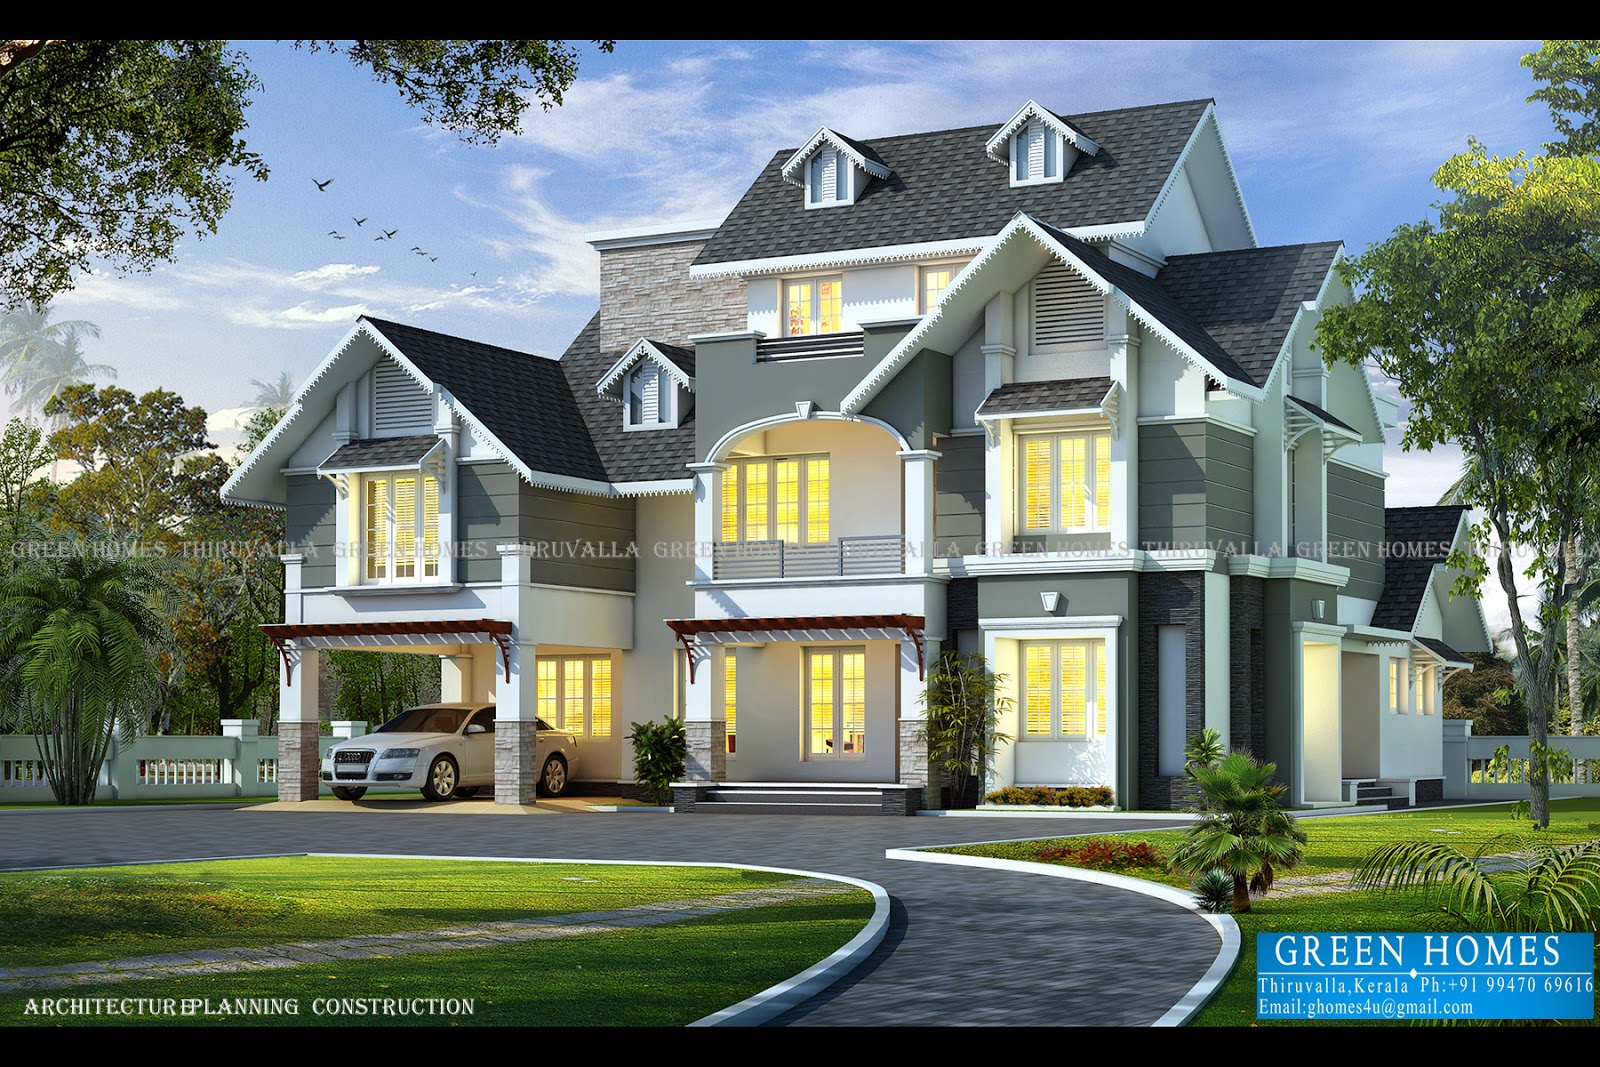 Green homes awesome european style house in 3650 sq feet for European house plans with photos